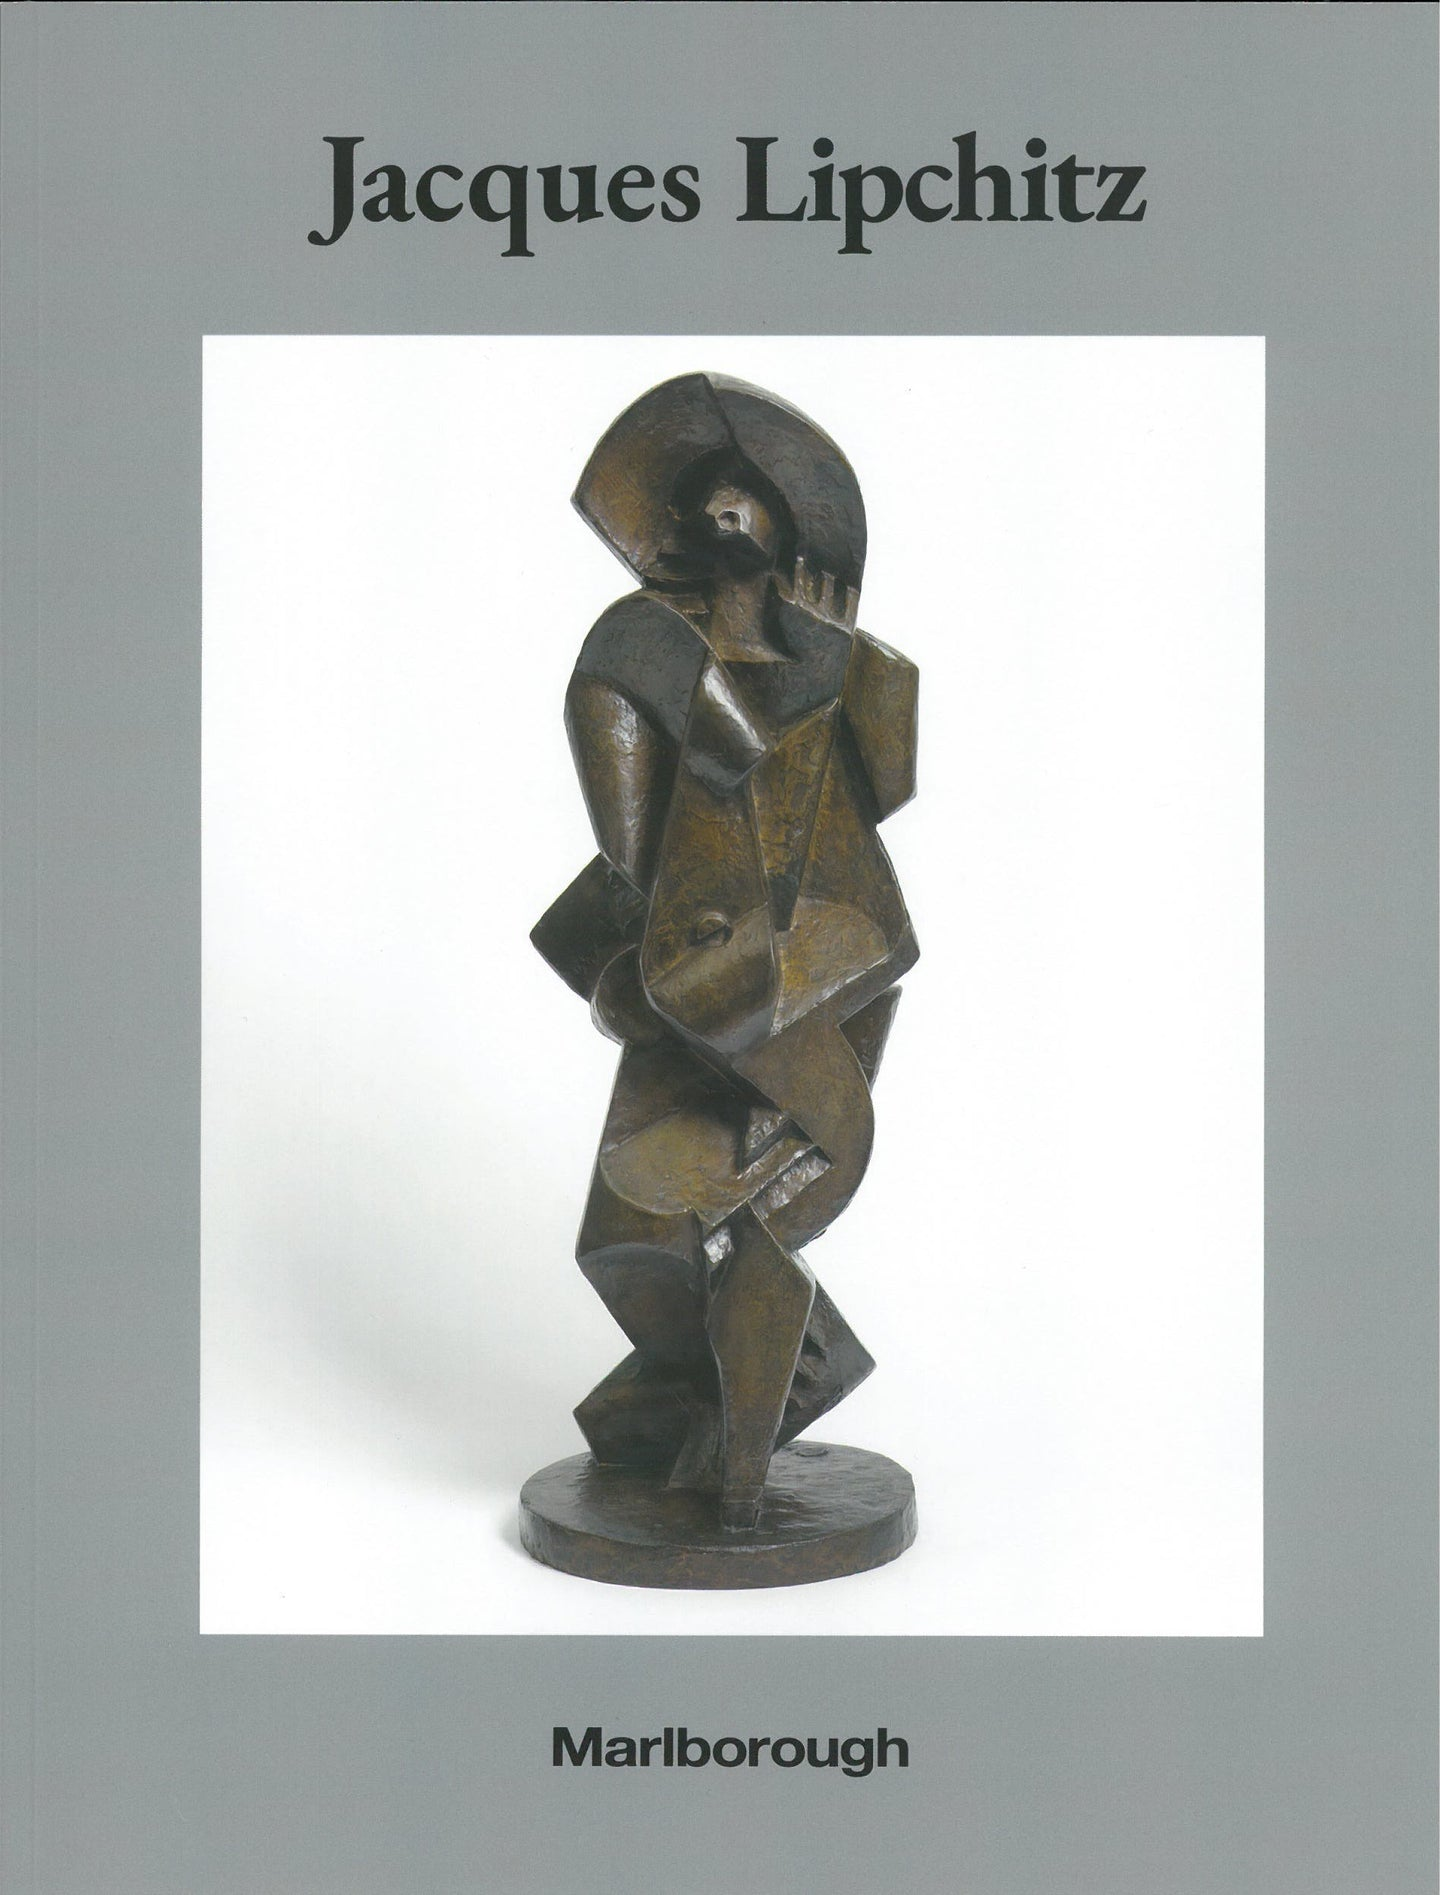 Lipchitz catalogue cover featuring bronze sculpture